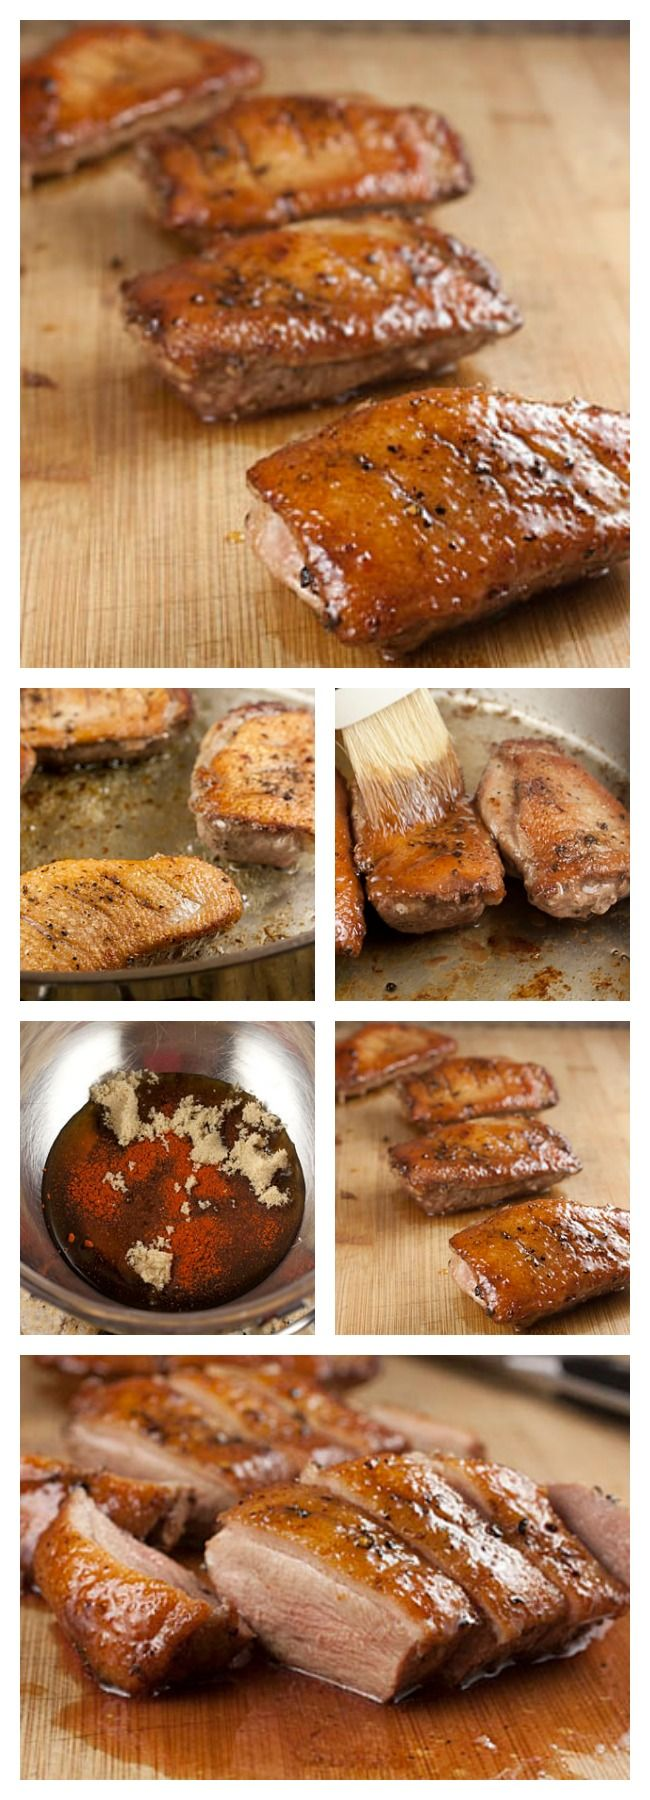 how to cook goose breast in oven